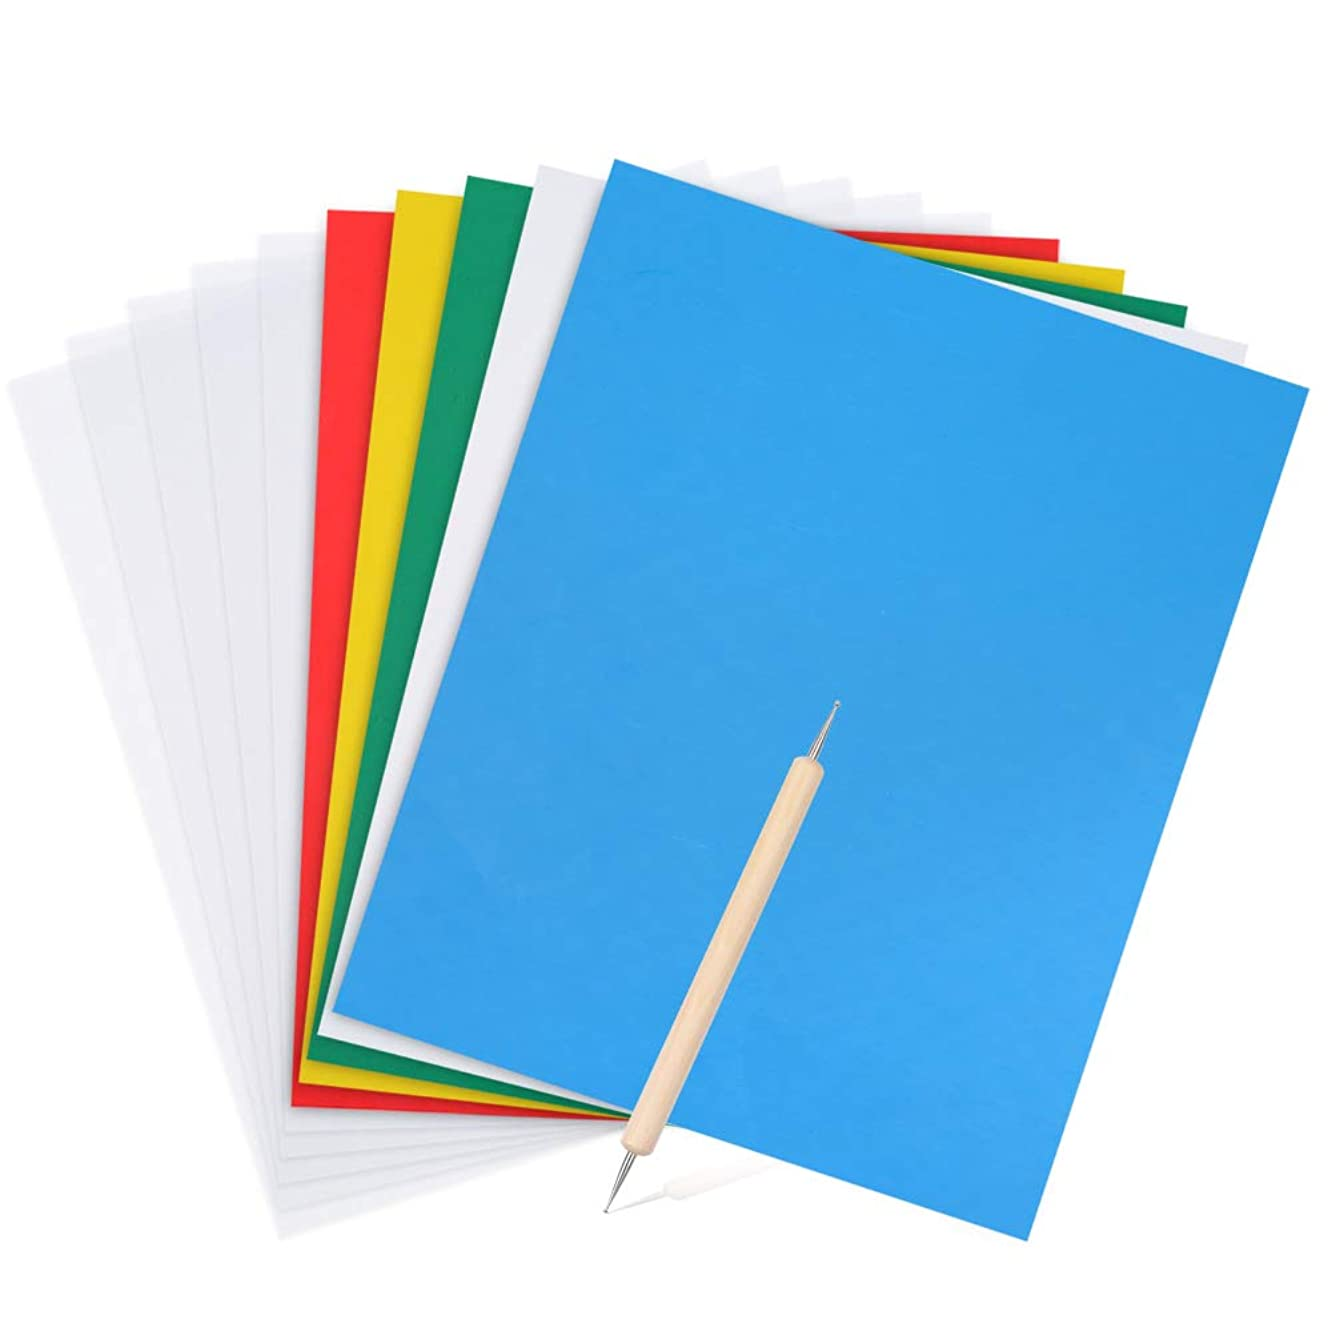 Caydo 11 Pieces Transfer Paper and Tracing Paper with Embossing Stylus, Carbon Water-Soluble Transfer Paper 11 x 9 Inch, Transfer Pattern on Cross Stitch Cloth, Canvas, Wood for Home Sewing Paint Kit